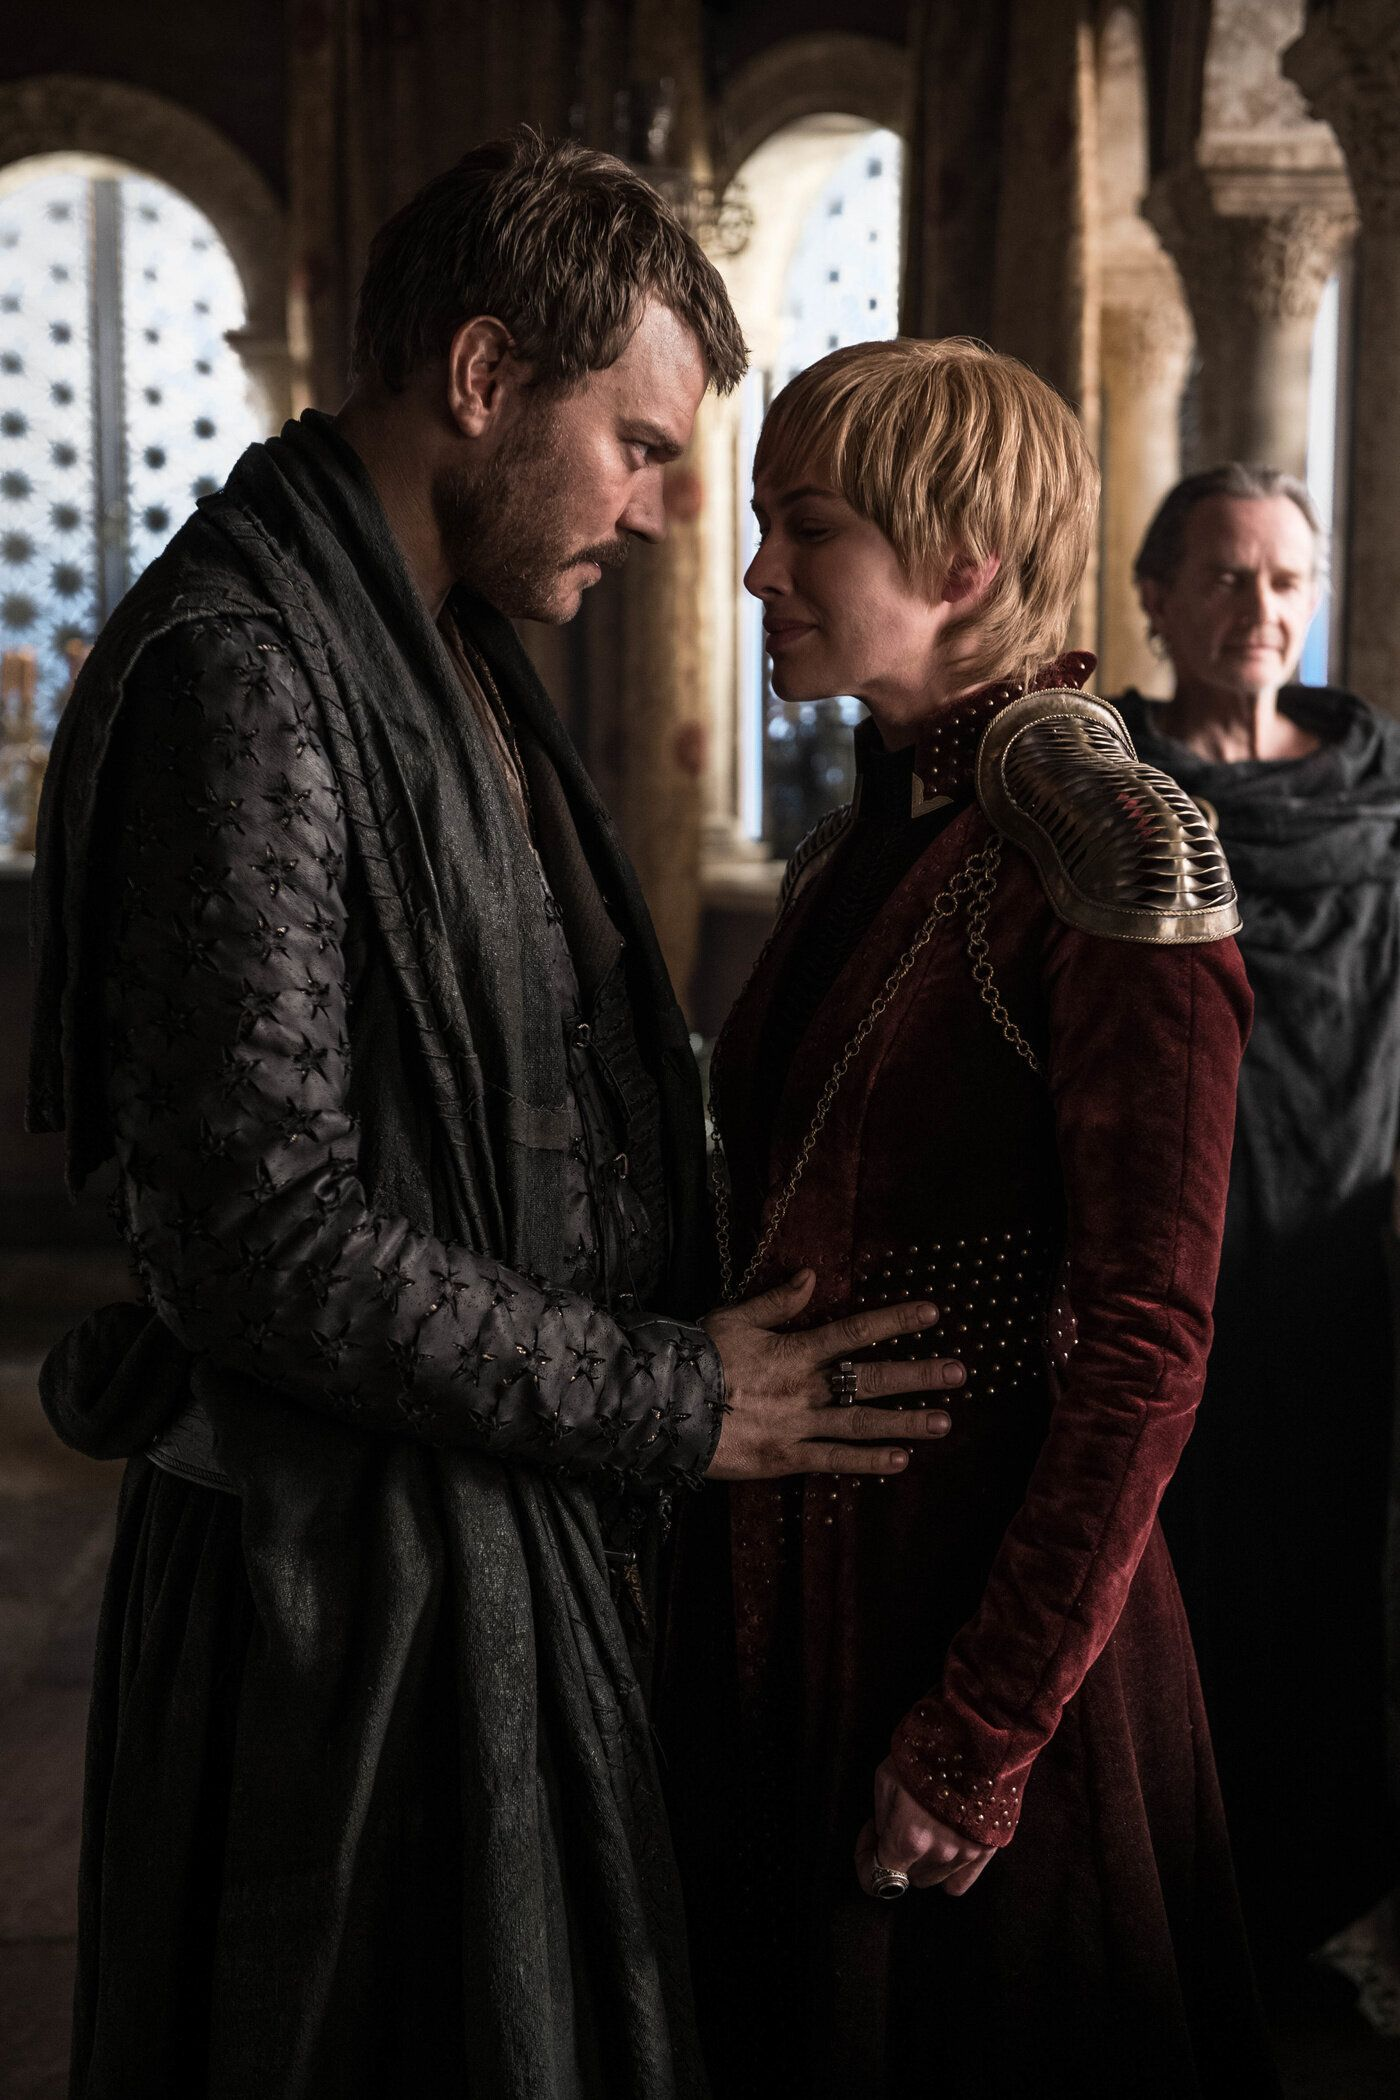 Euron and Cersei, one happy murderous